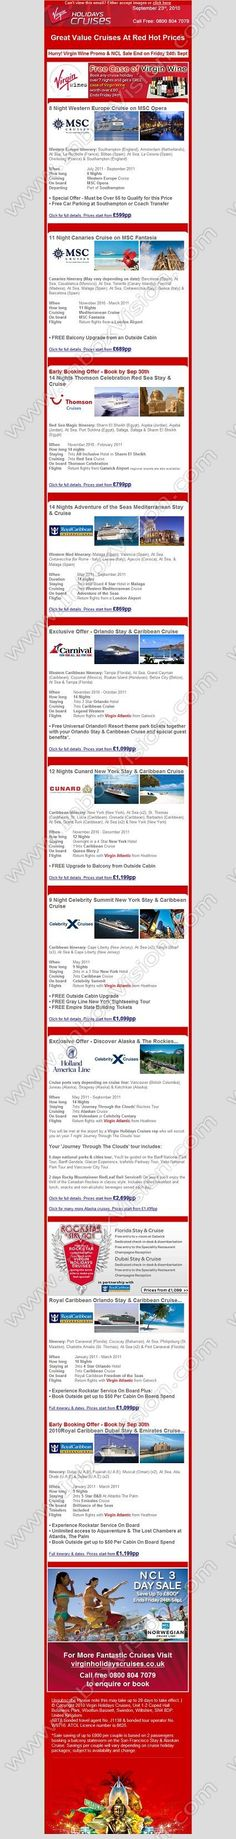 Company:   Virgin Holidays Cruises   Subject:    Red Hot Cruise Deals - Prices from GBP599 - FreeCase of Wine, NCL Sale, Cabin Upgrades, On Board Spend and more             INBOXVISION is a global database and email gallery of 1.5 million B2C and B2B promotional emails and newsletter templates, providing email design ideas and email marketing intelligence www.inboxvision.com/blog  #EmailMarketing #DigitalMarketing #EmailDesign #EmailTemplate #InboxVision  #SocialMedia #EmailNewsletters